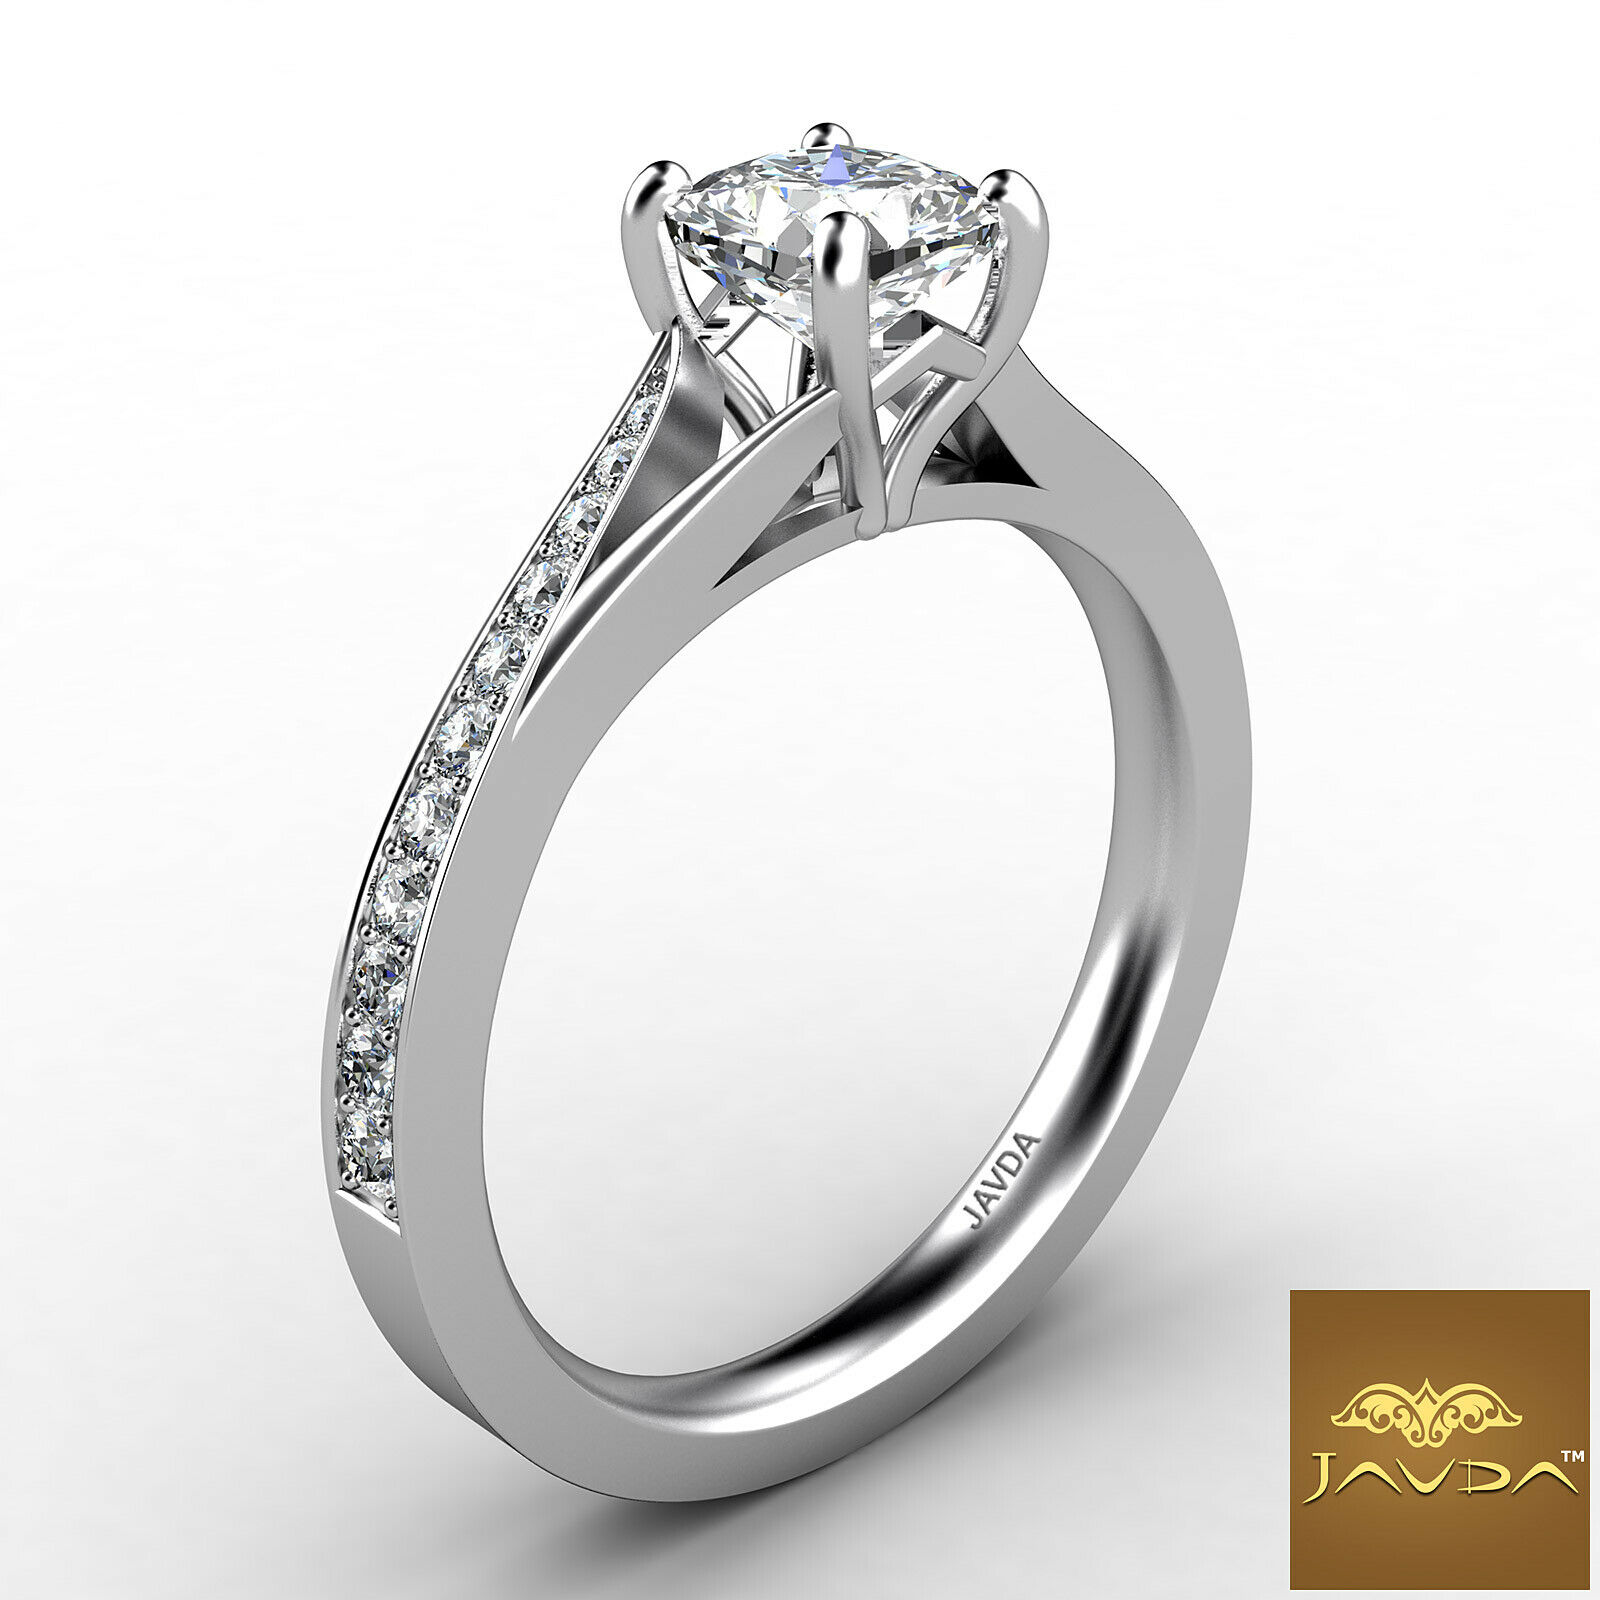 1.15ctw 4 Prong Side Stone Cushion Diamond Engagement Ring GIA G-VVS2 White Gold 2